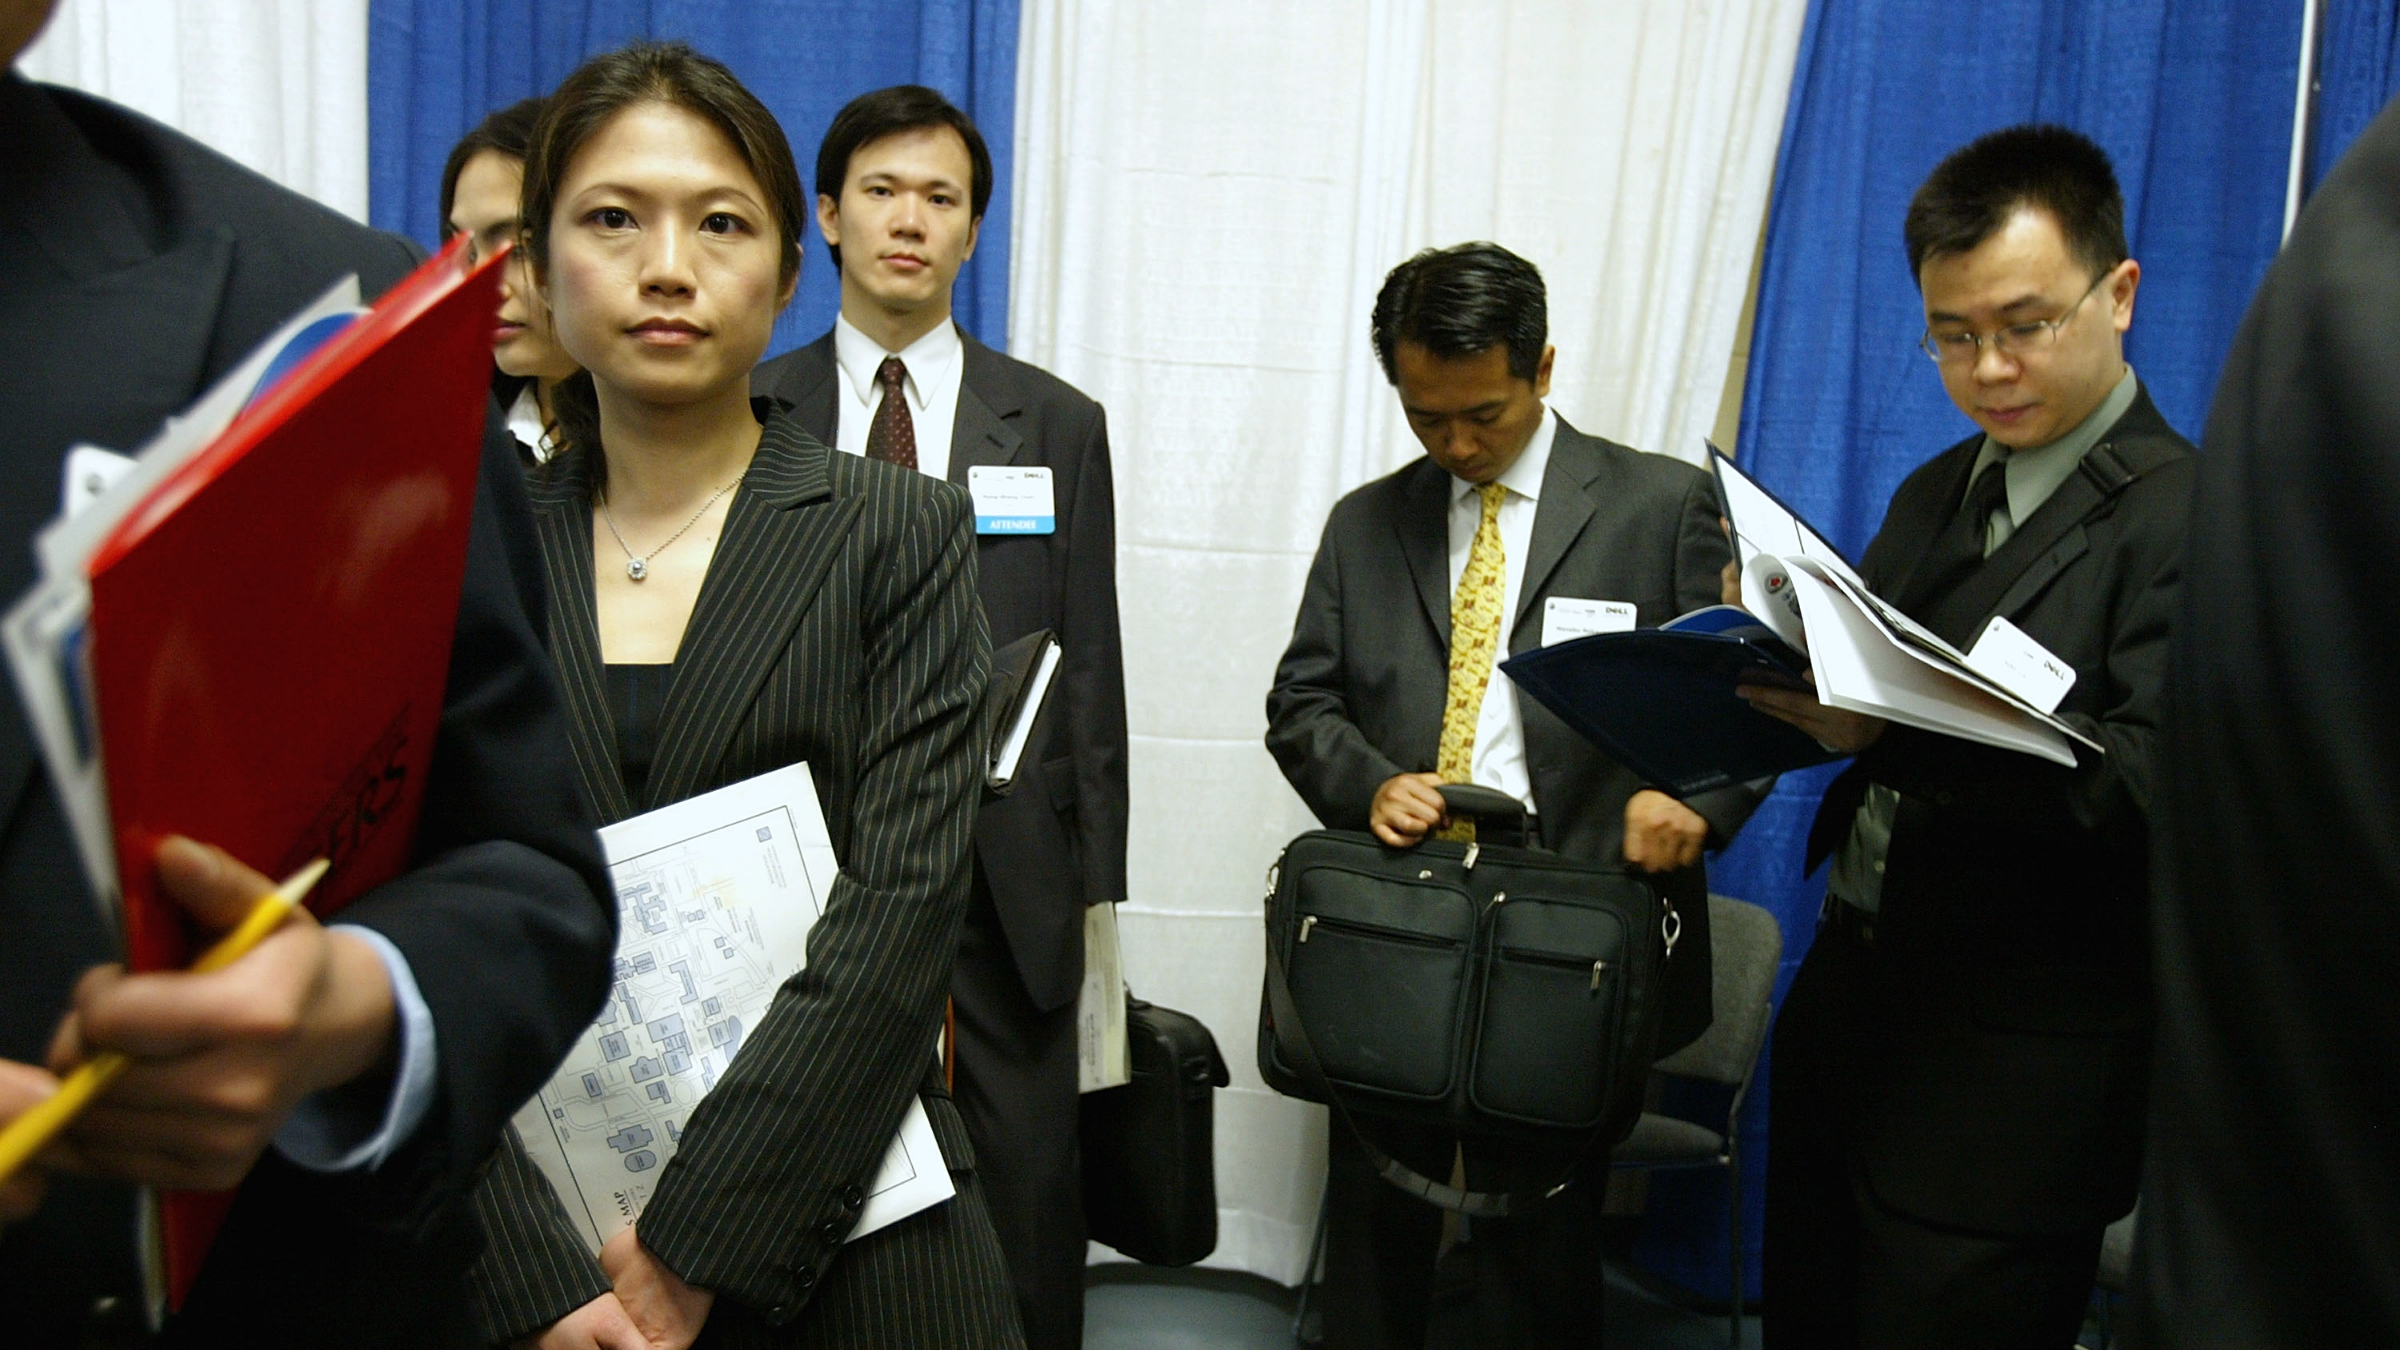 Job applicants at Asian Diversity Career Expo